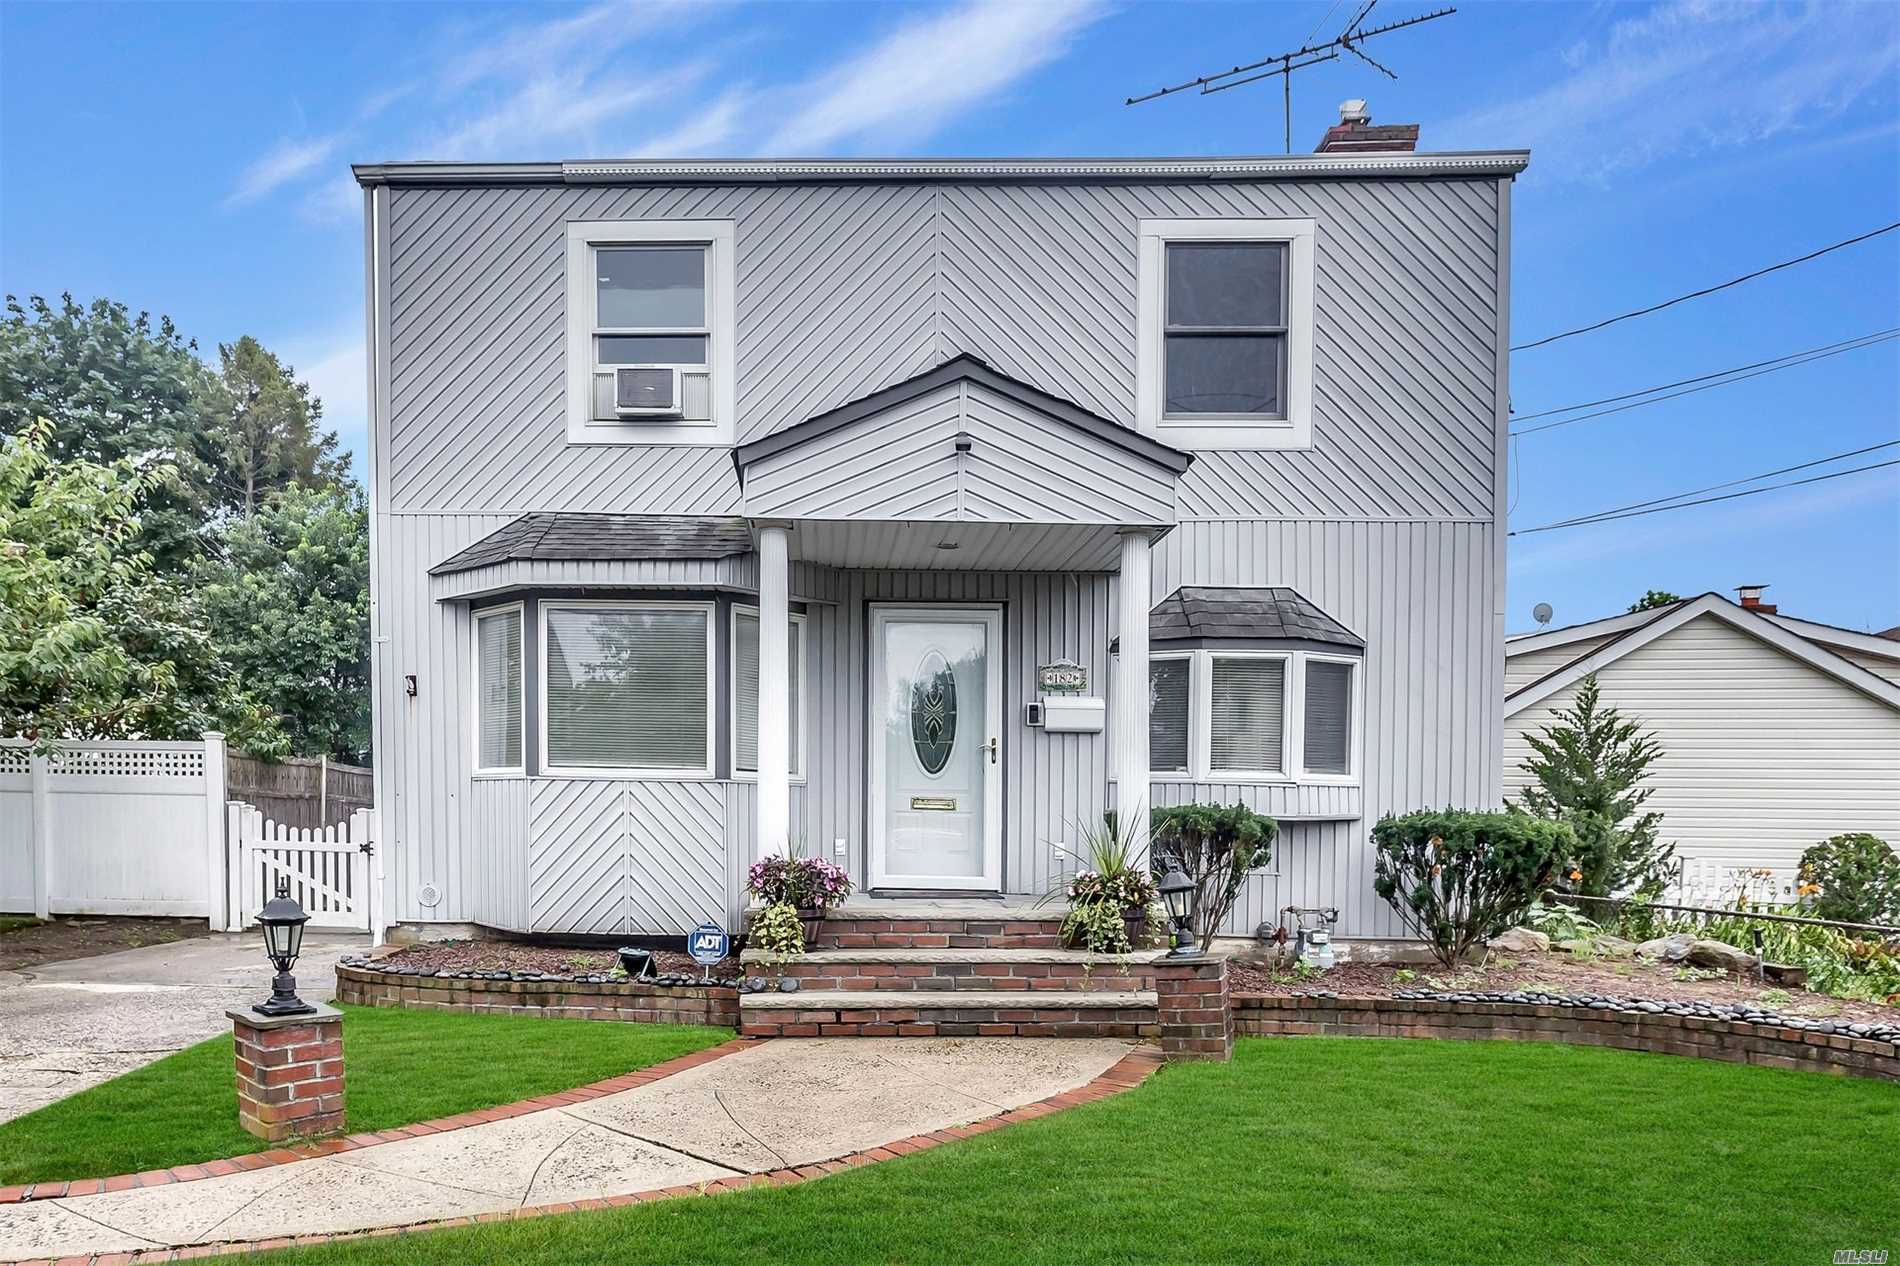 3 Bedroom Colonial With King Size Master Bedroom, Updated Large Eat-In-Kitchen, Updated Heating System, Central Air Conditioning And Central Vacuum, Mid Block On A Quiet Dead End Street. Tax Grievance Has Been Filed